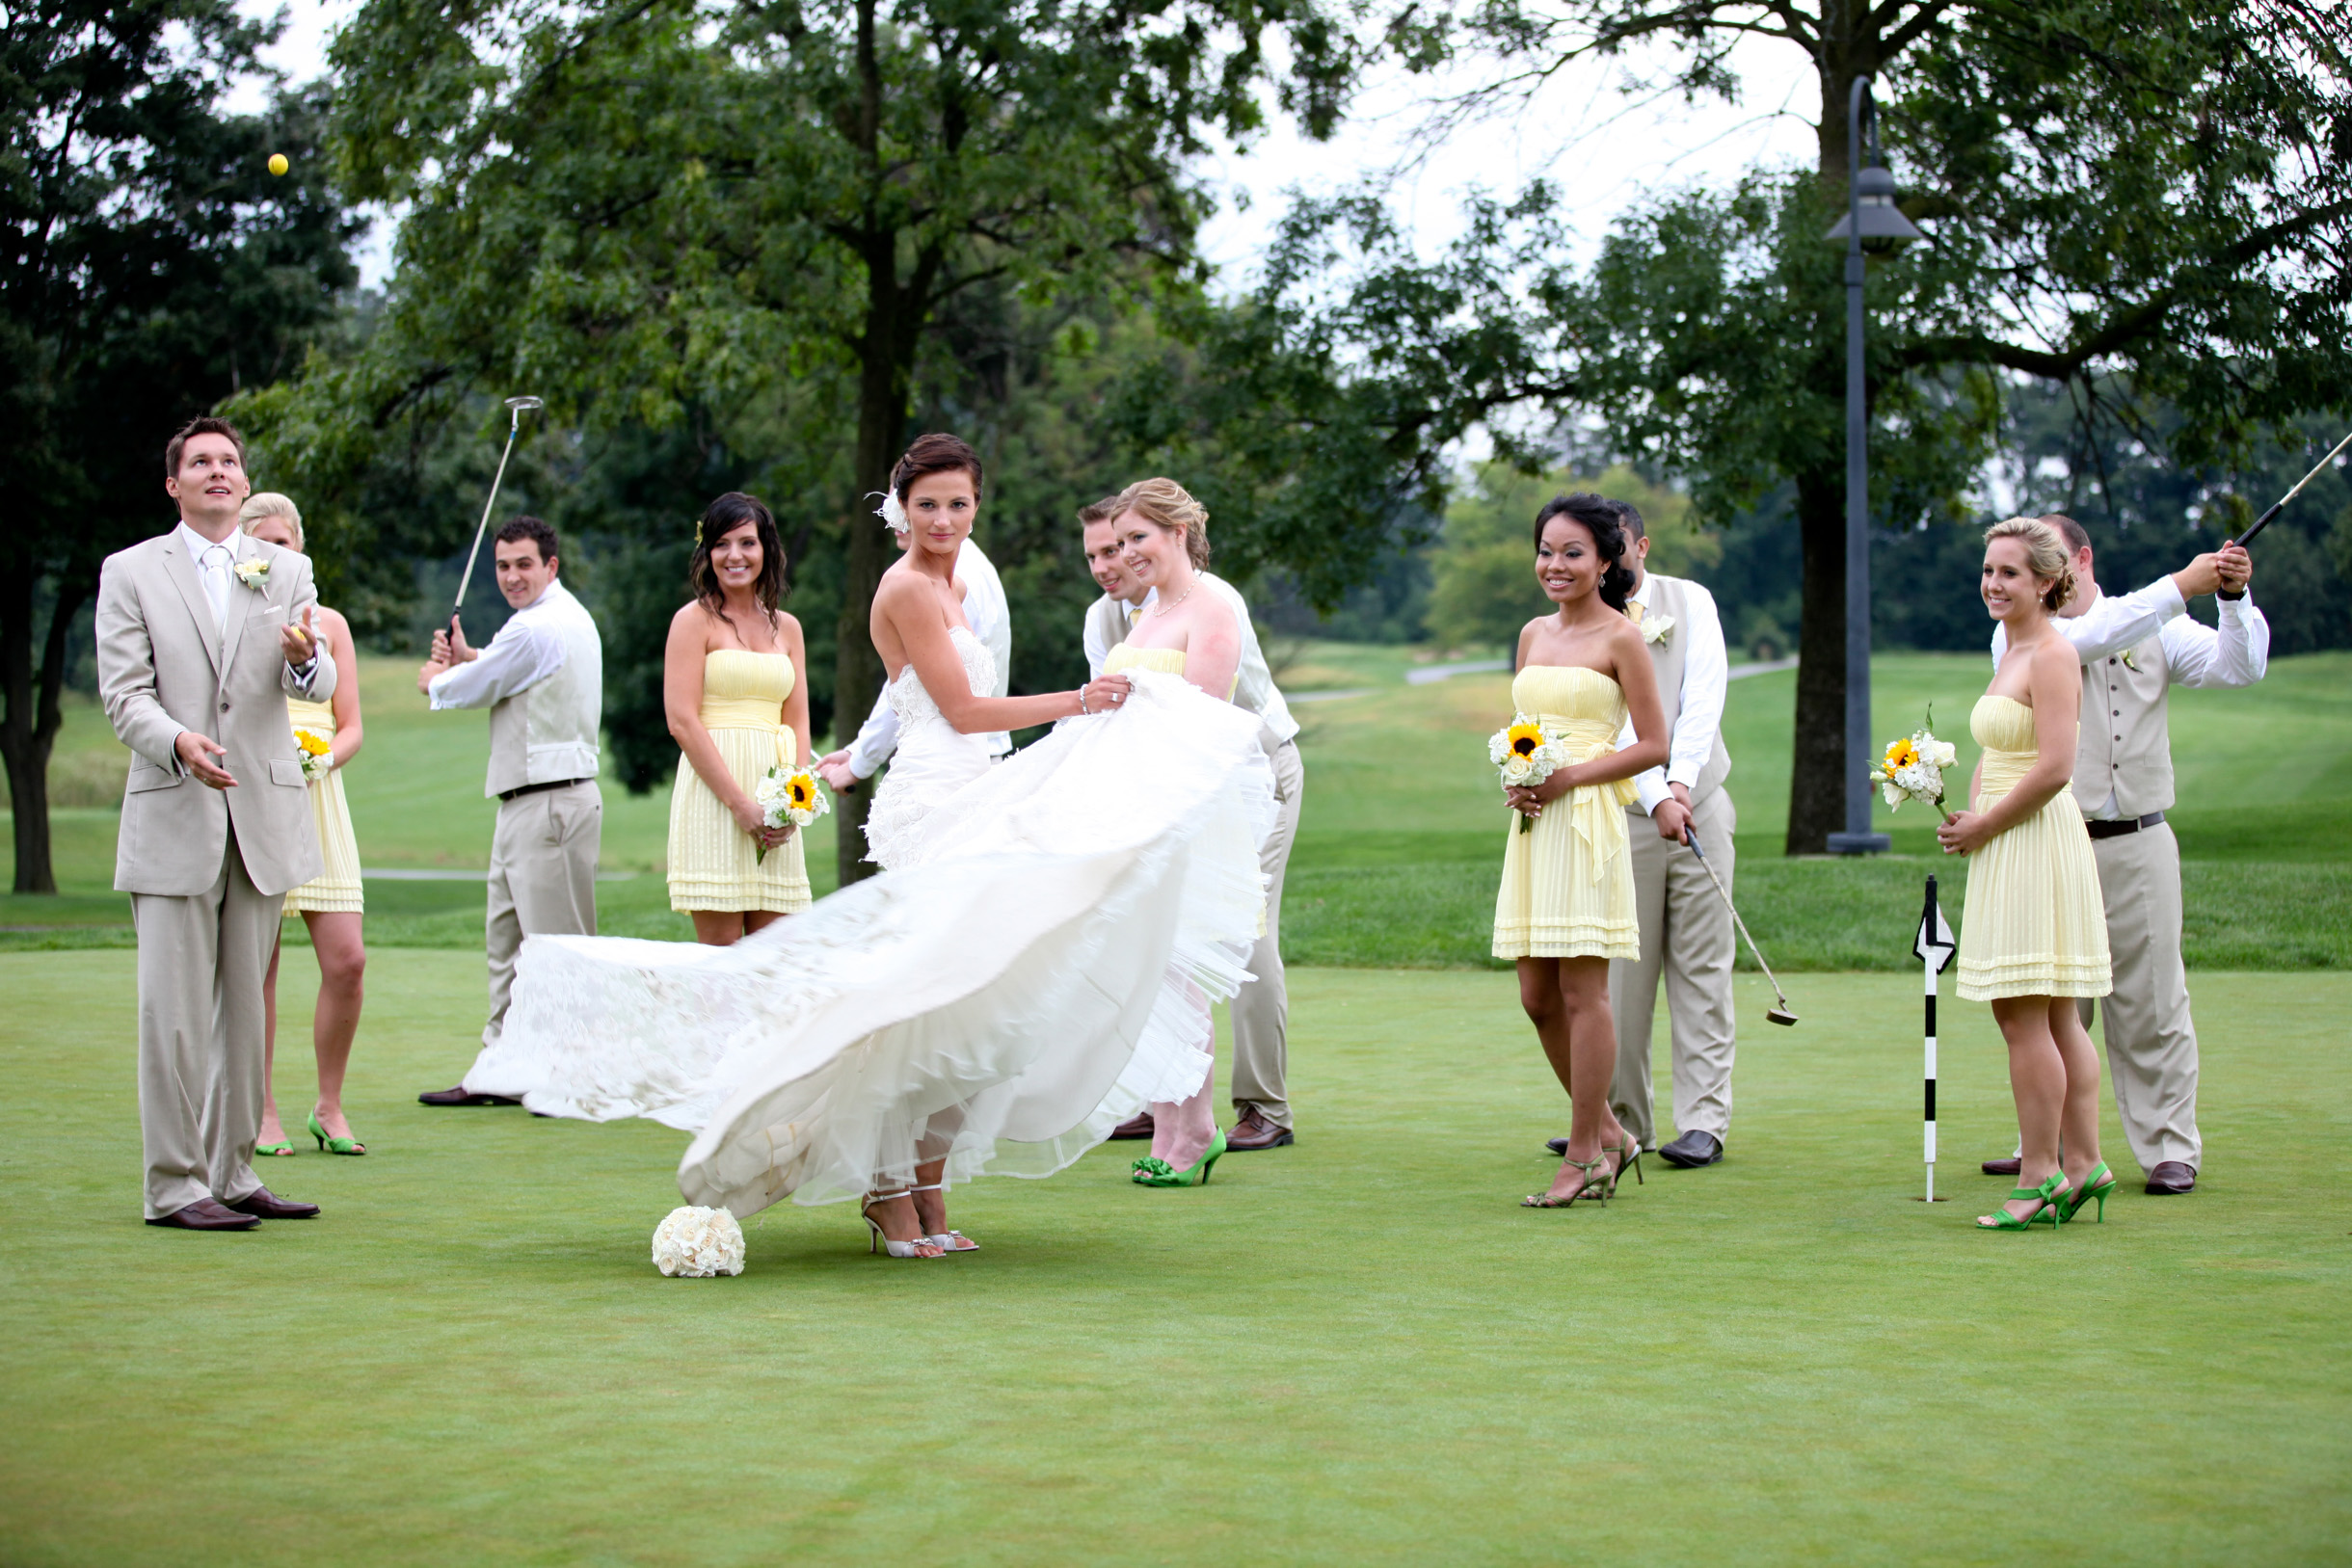 Wedding party ongolf course goofing around and acting funny